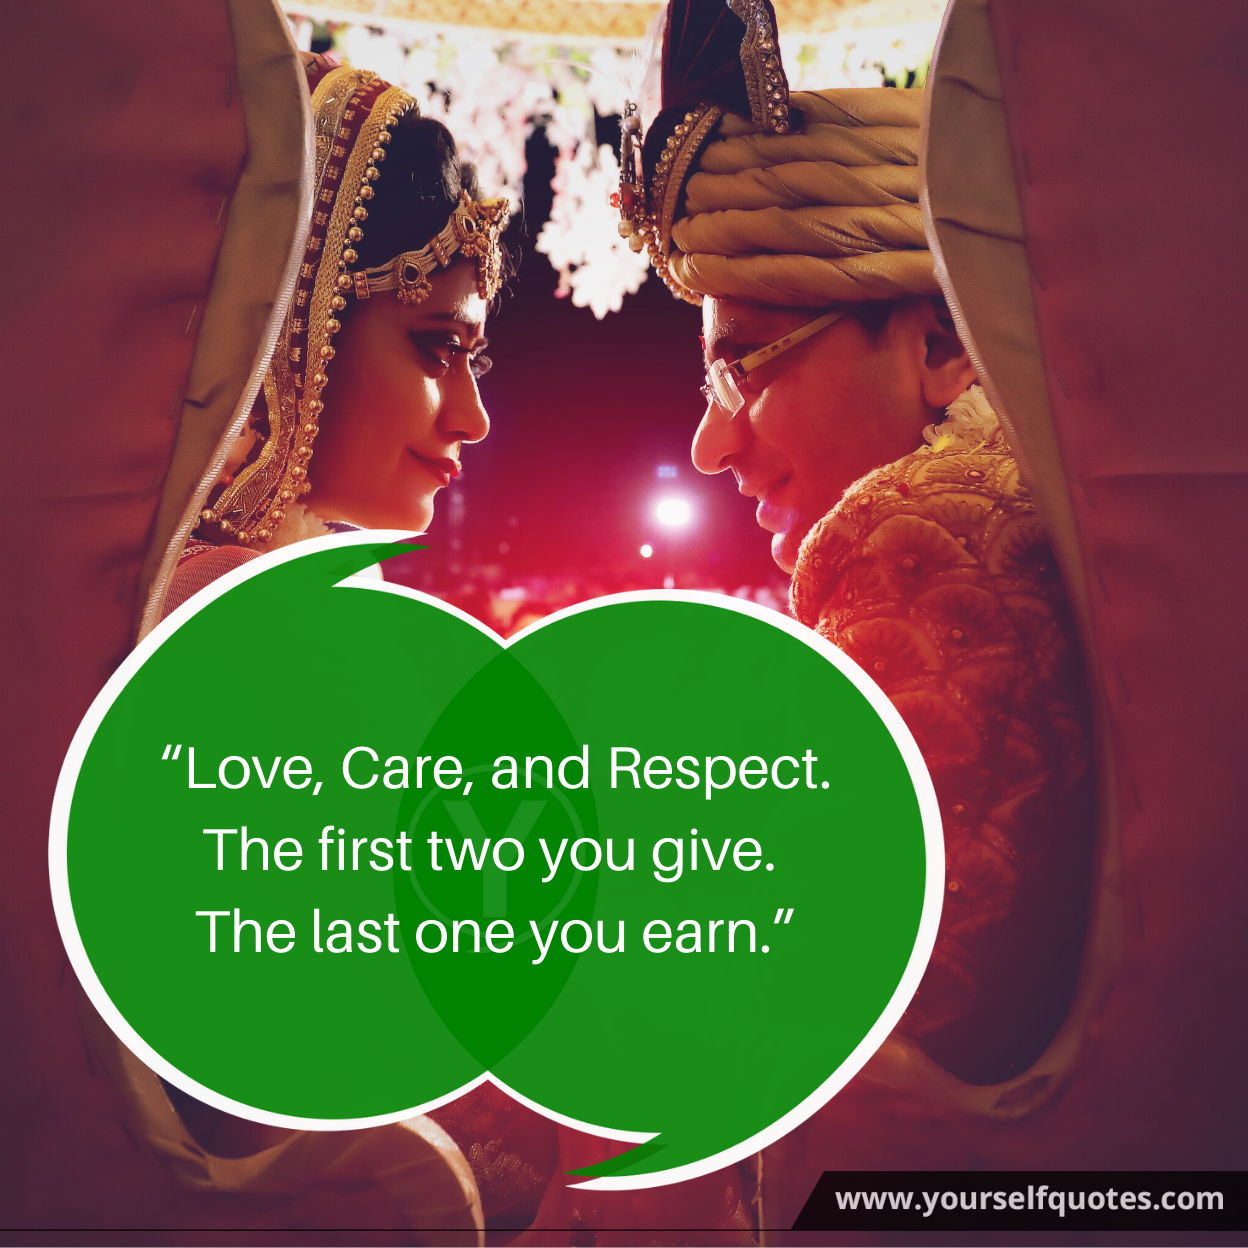 Quotes on Love Care